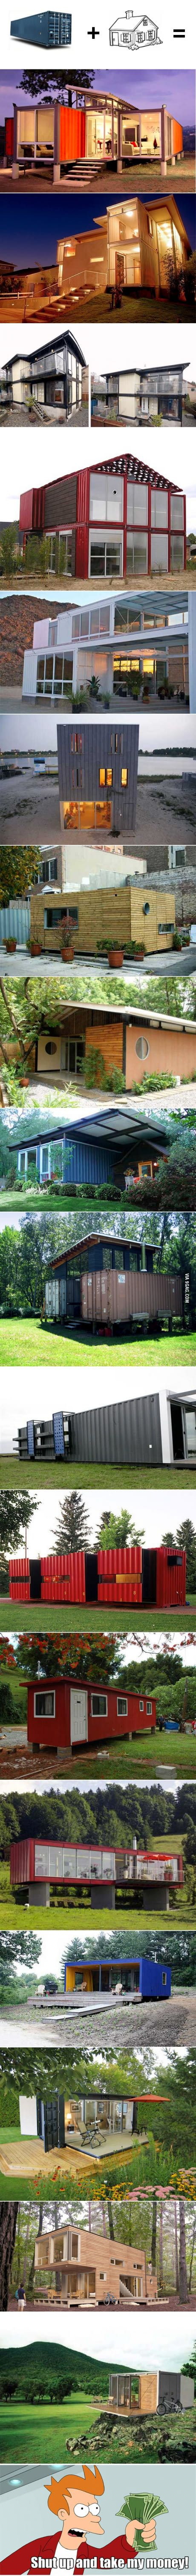 Container Tiny Haus Kaufen Container Homes So Cool Pensando Na Escola Pinterest